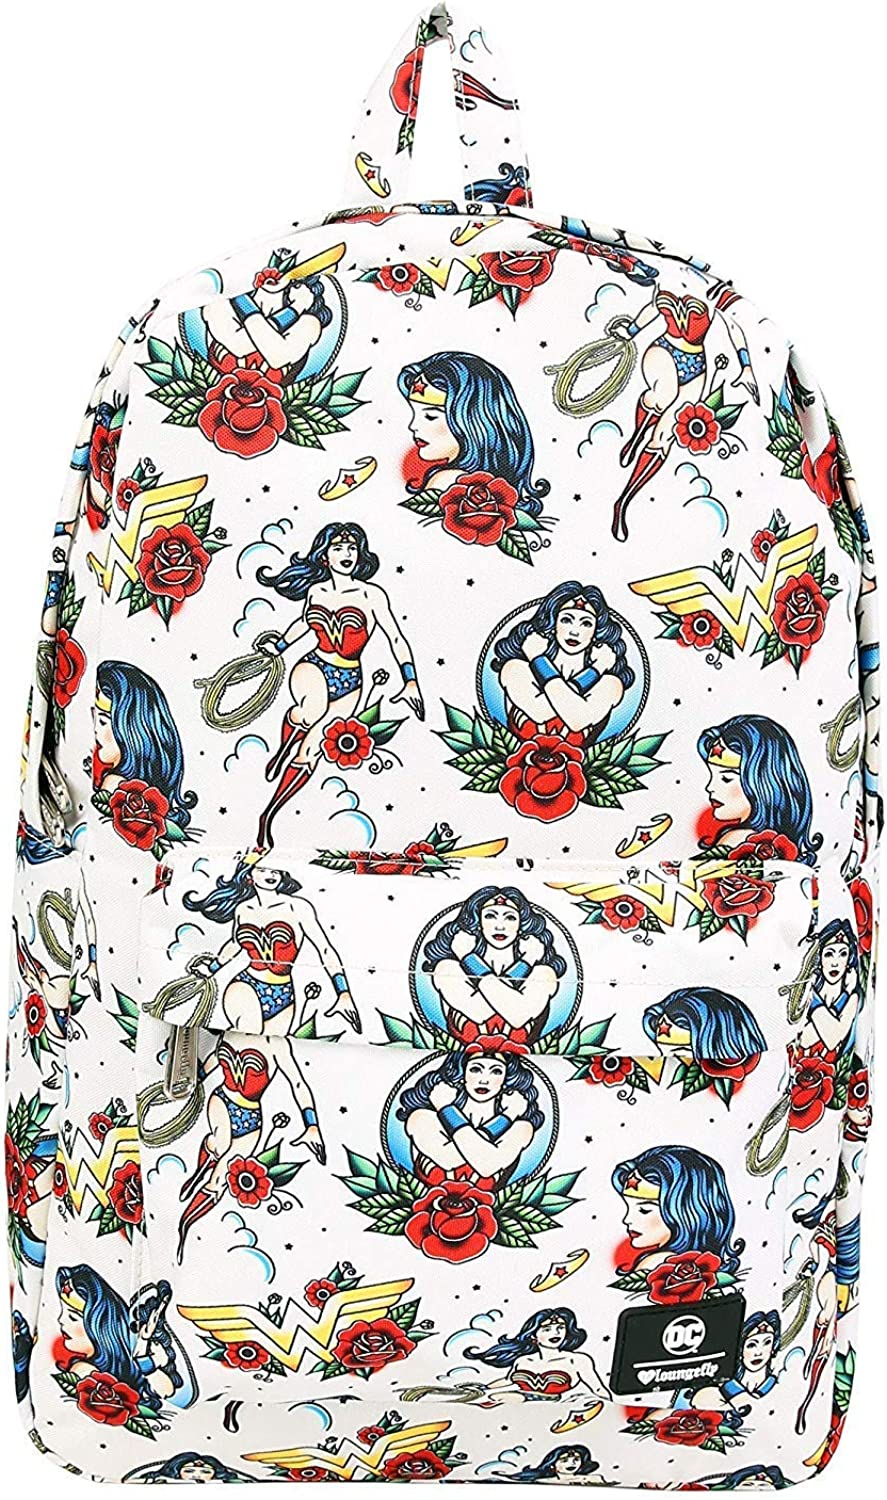 Loungefly x Wonder Woman Tattoo-Rucksack aus Nylon, wei (Wei) - LOUDCCBK0016